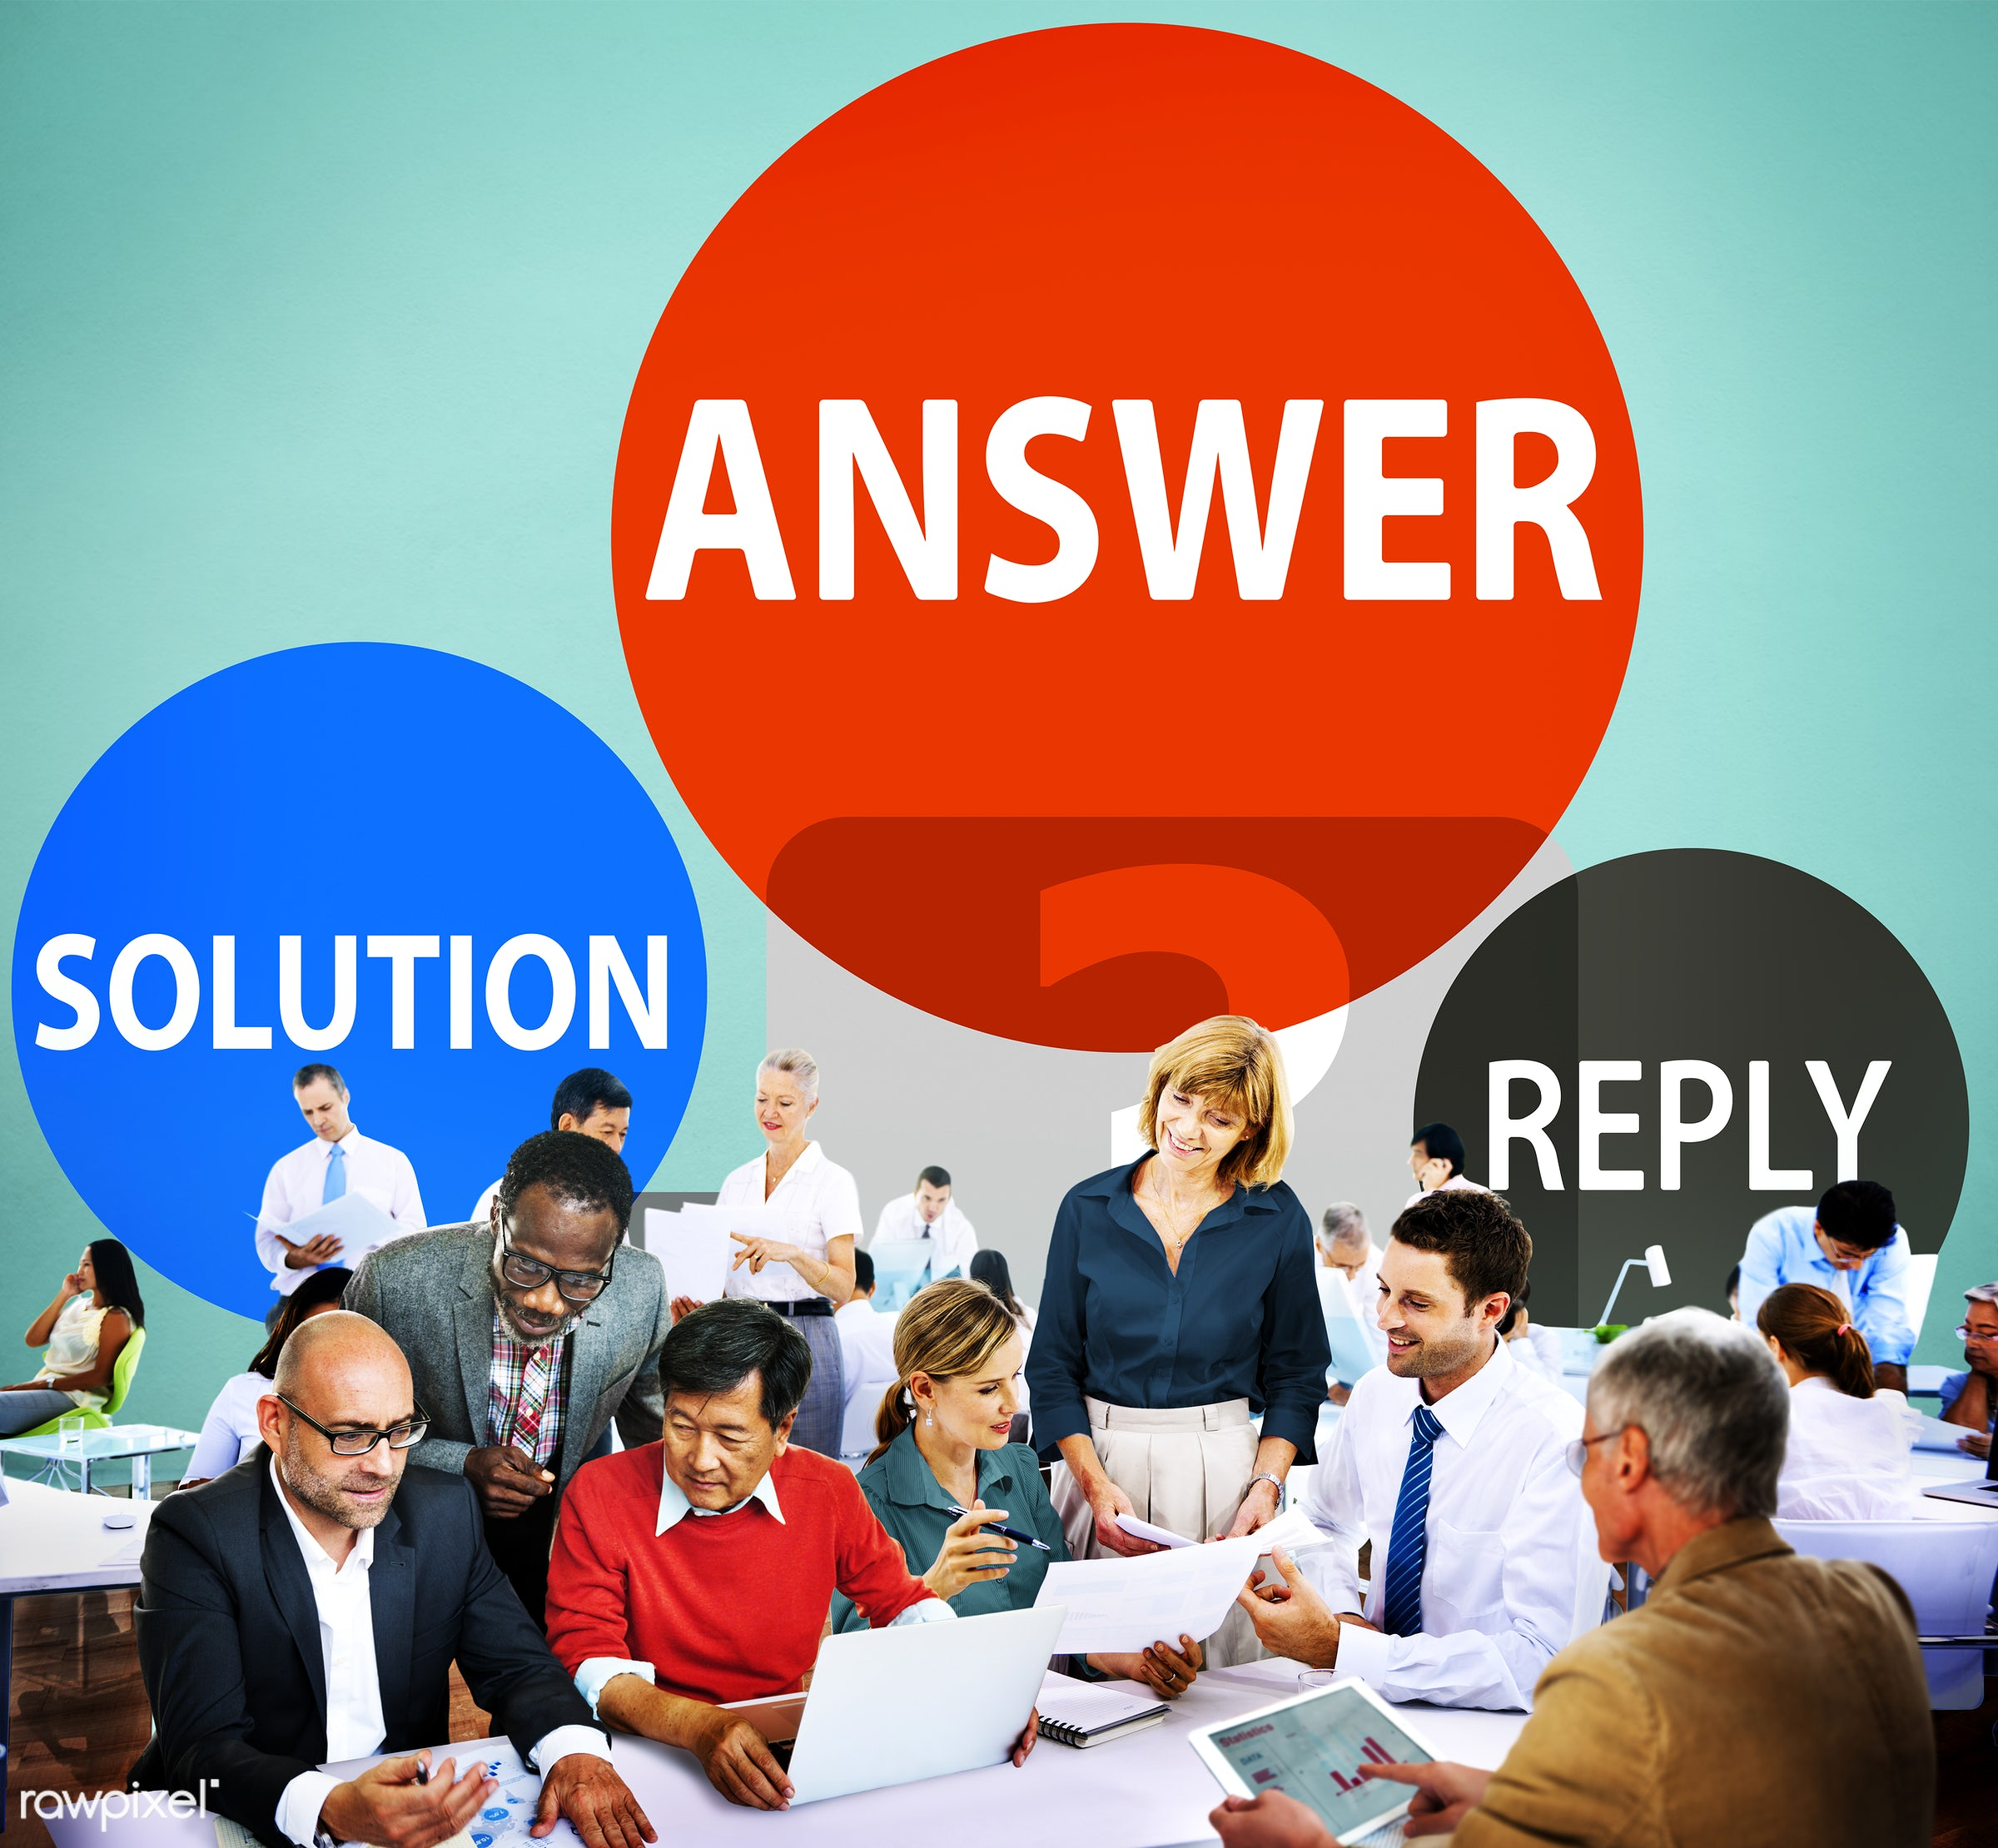 analysis, answers, assistance, business, business people, businessmen, businesswomen, busy, communication, conversation,...